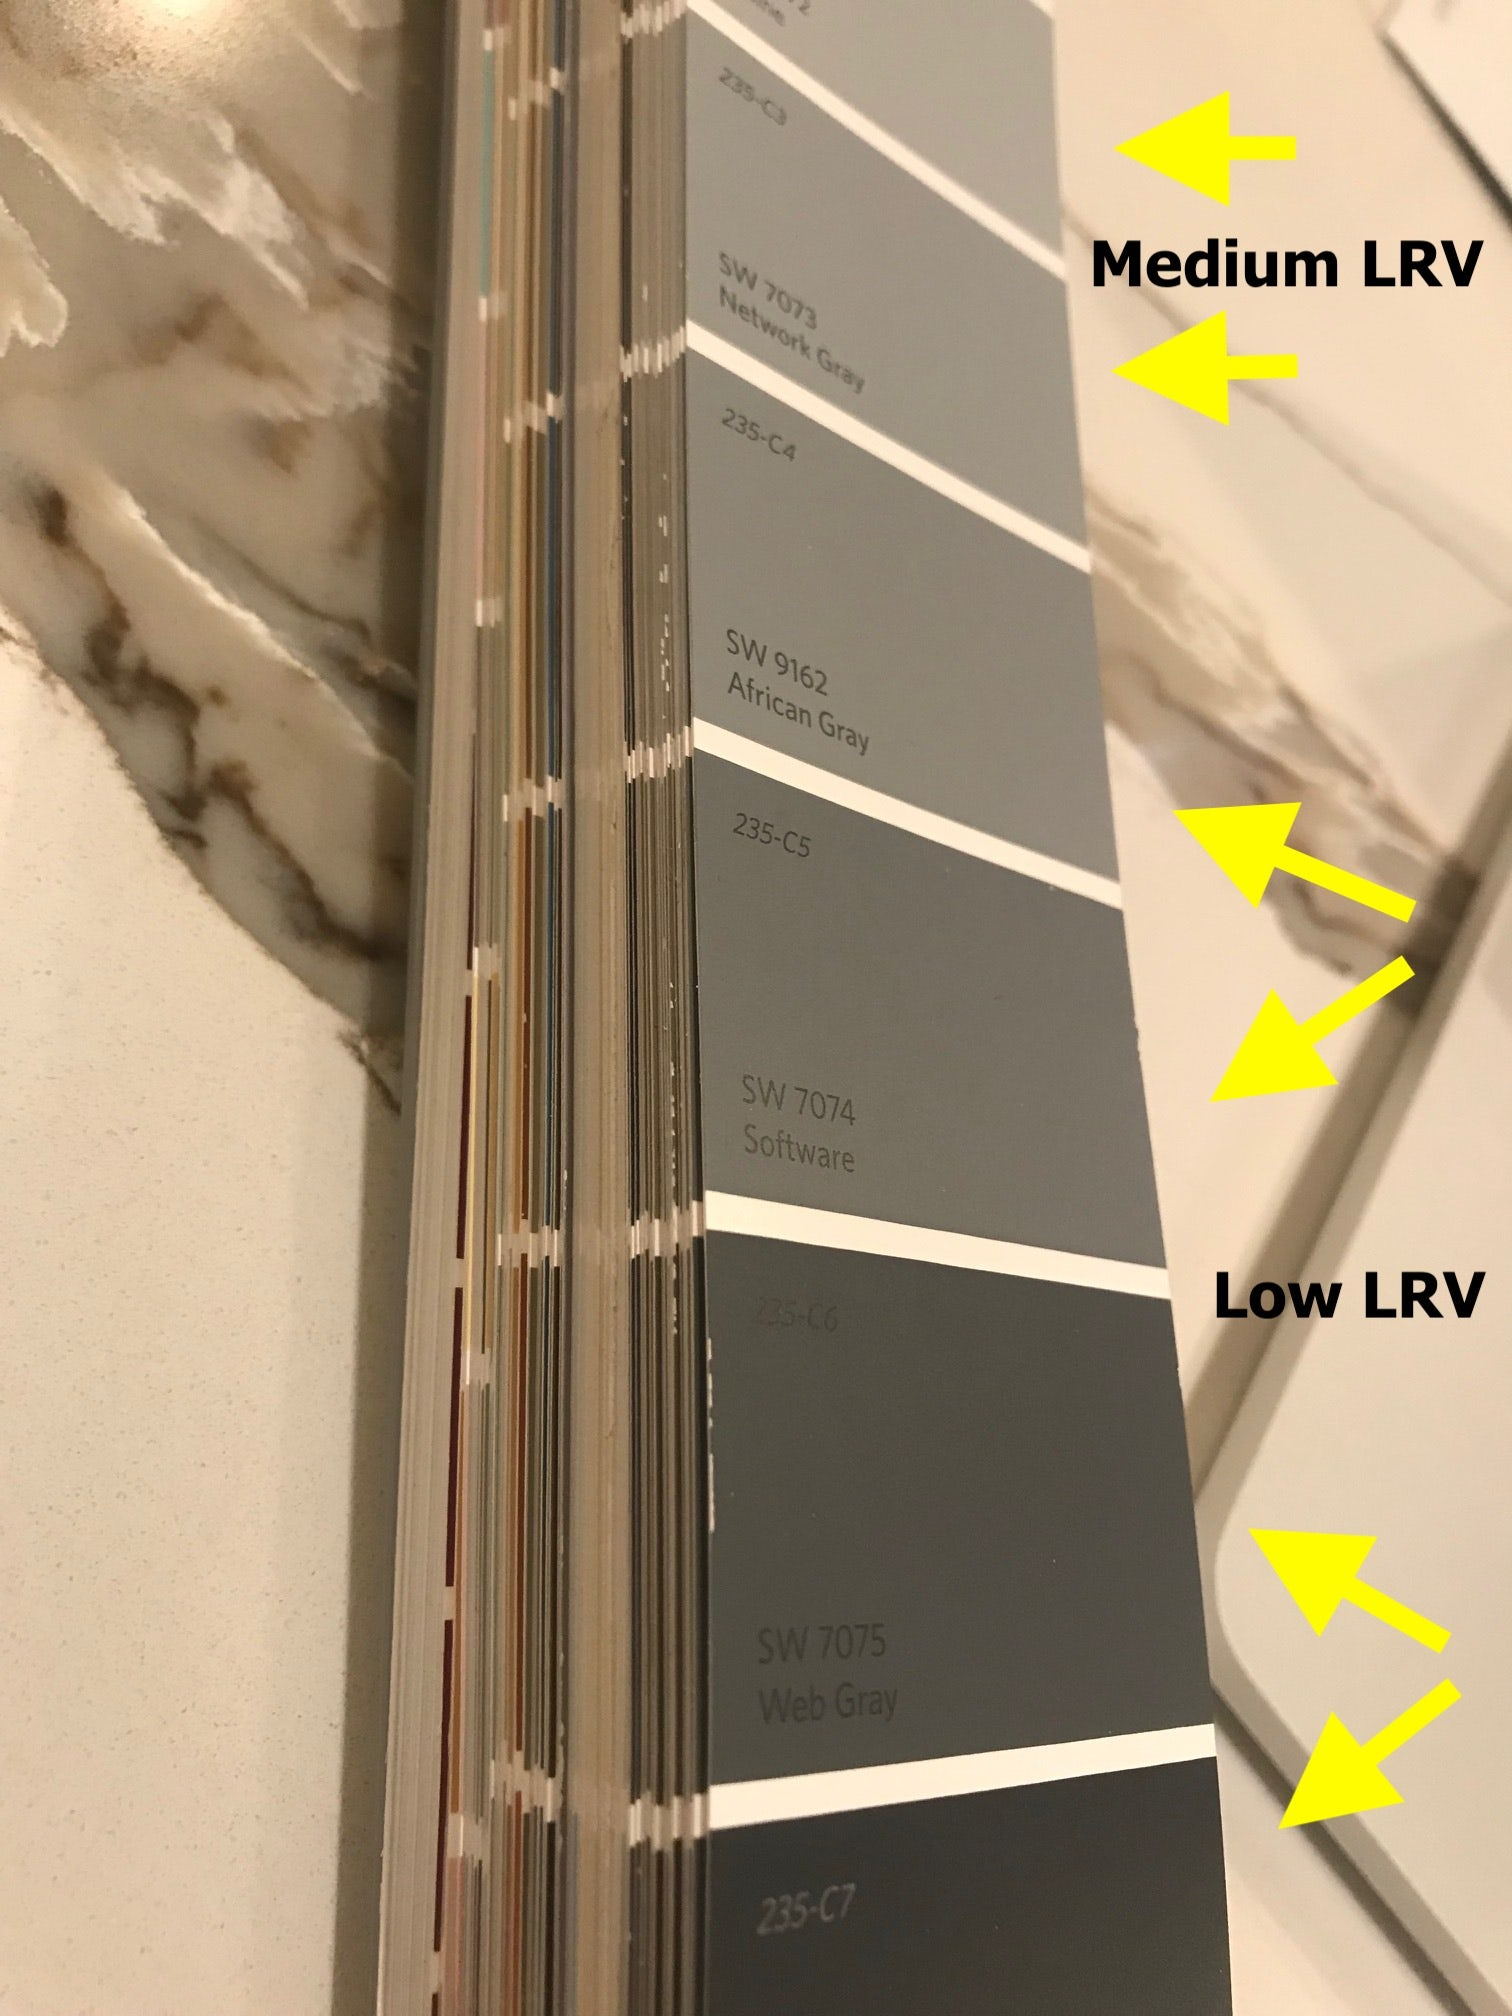 Photo of a paint swatch family with medium LRV colors and low LRV colors called out